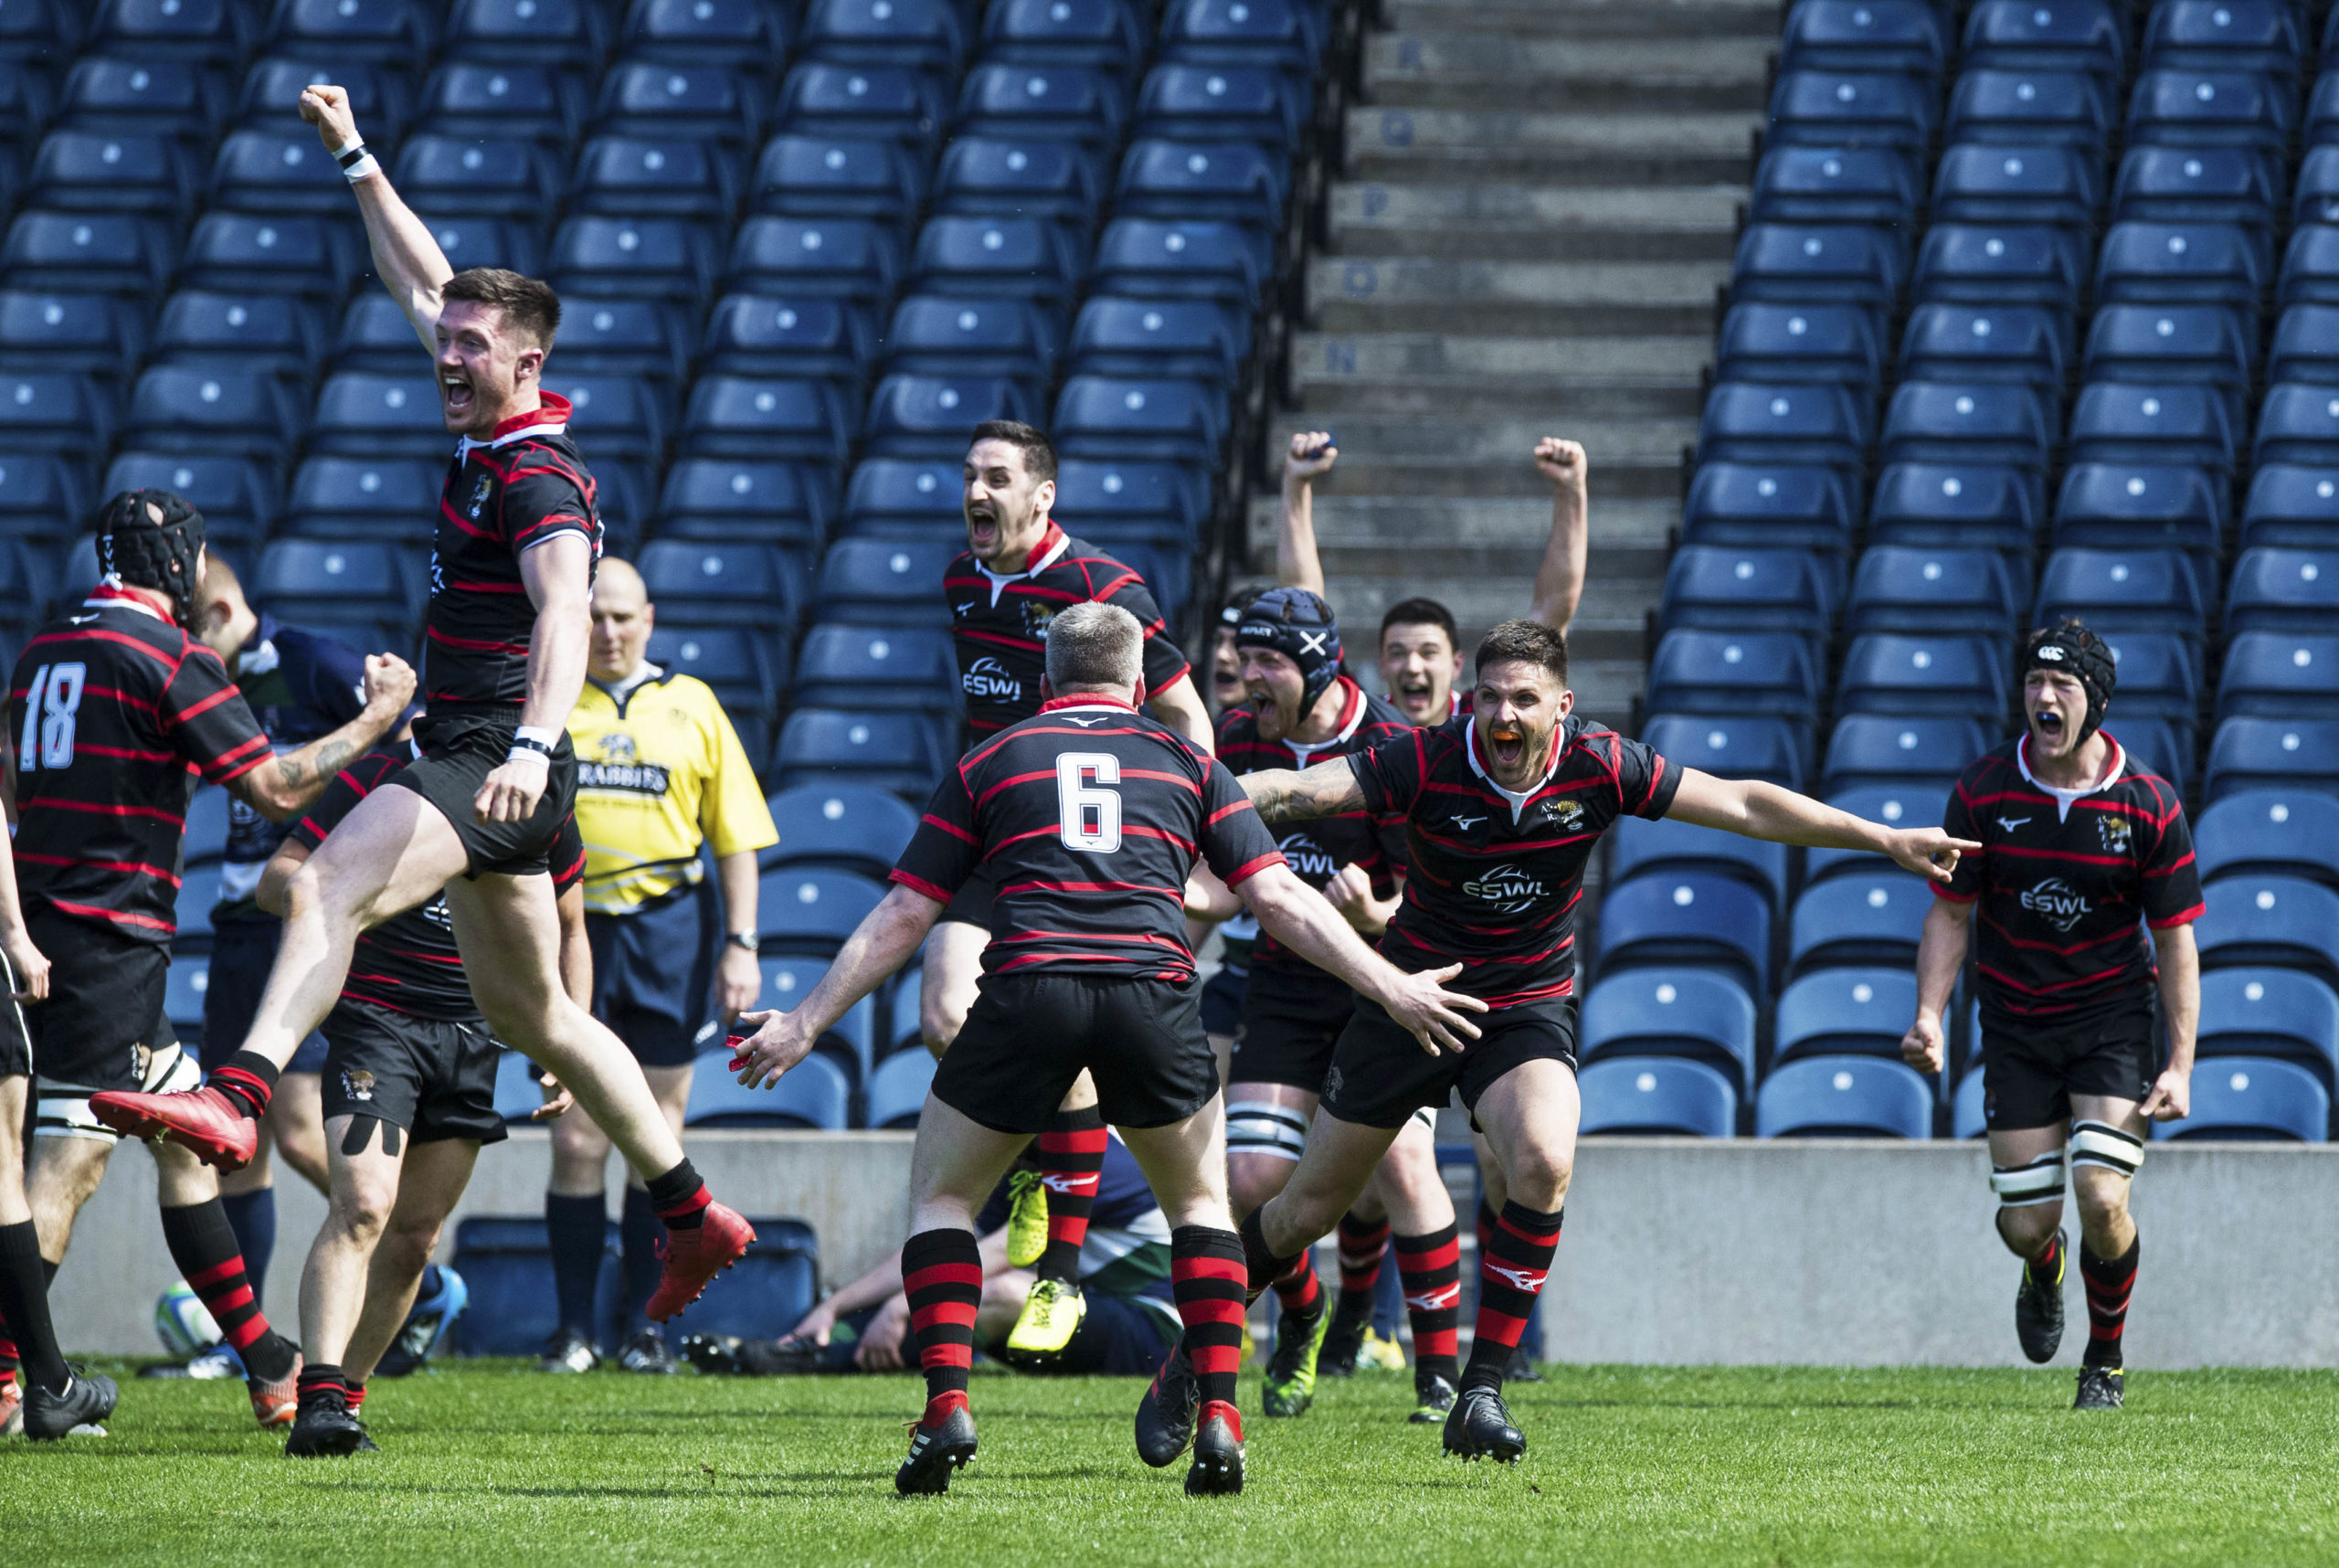 The Aberdeenshire players celebrate the result at full time of the National Bowl.